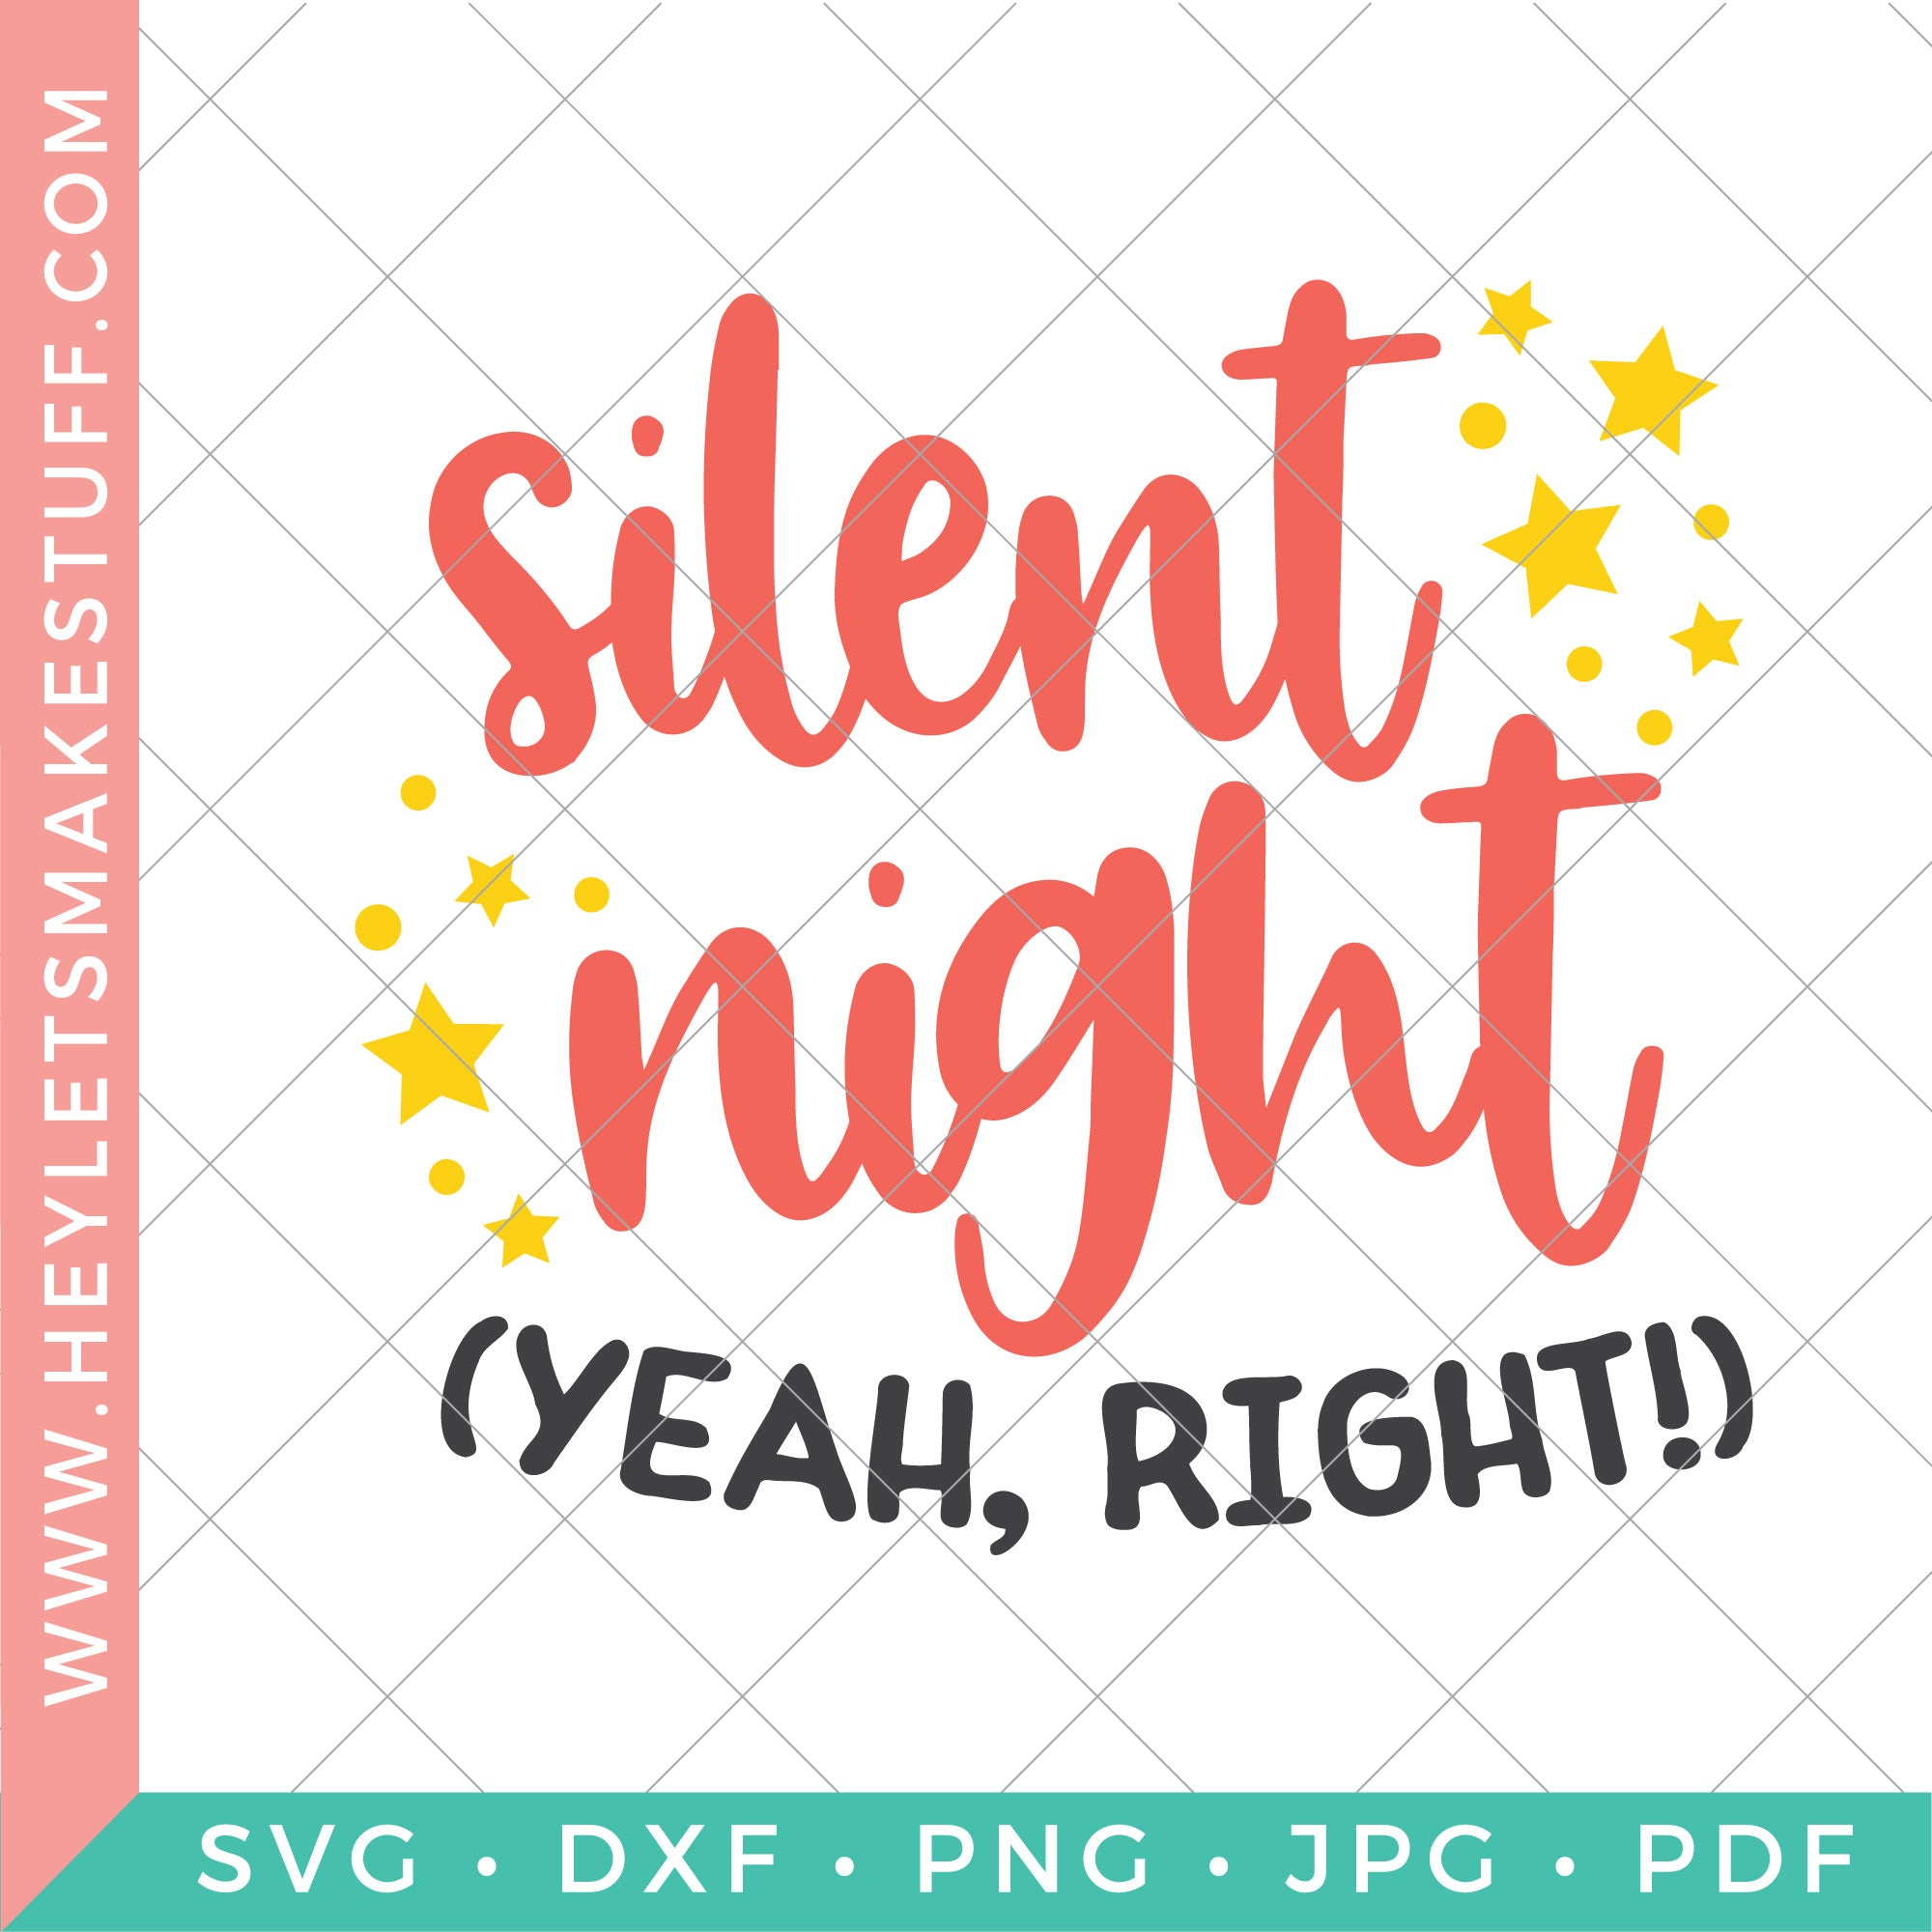 Silent Night (Yeah Right)